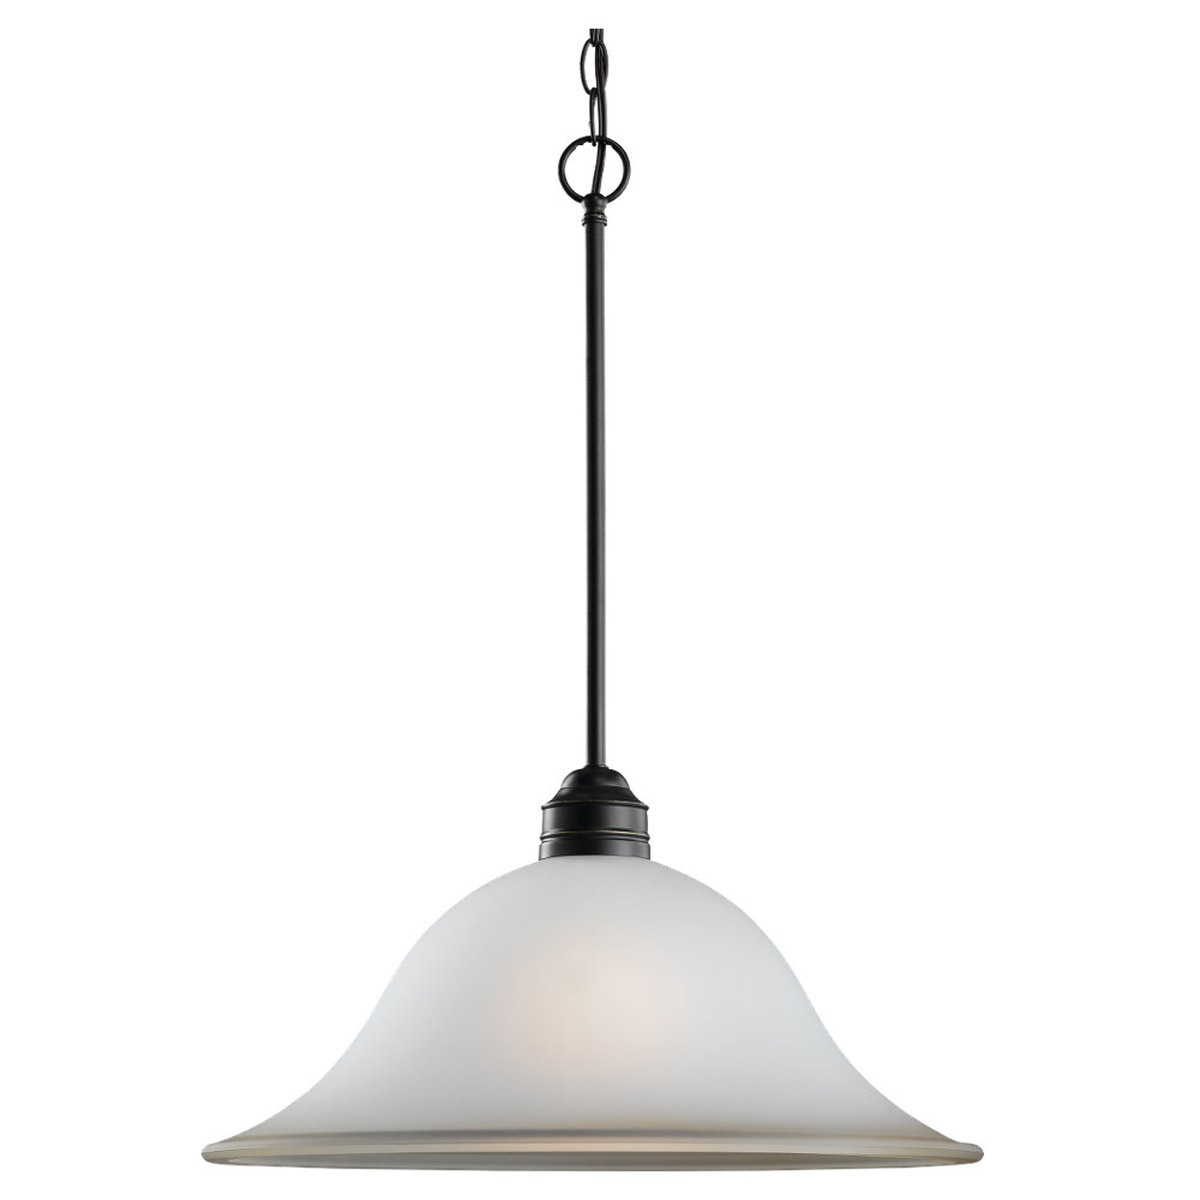 Sea Gull 65850-782 Gladstone 1 Light 18 inch Heirloom Bronze Pendant Ceiling Light in Smokey Amber Glass, Standard photo